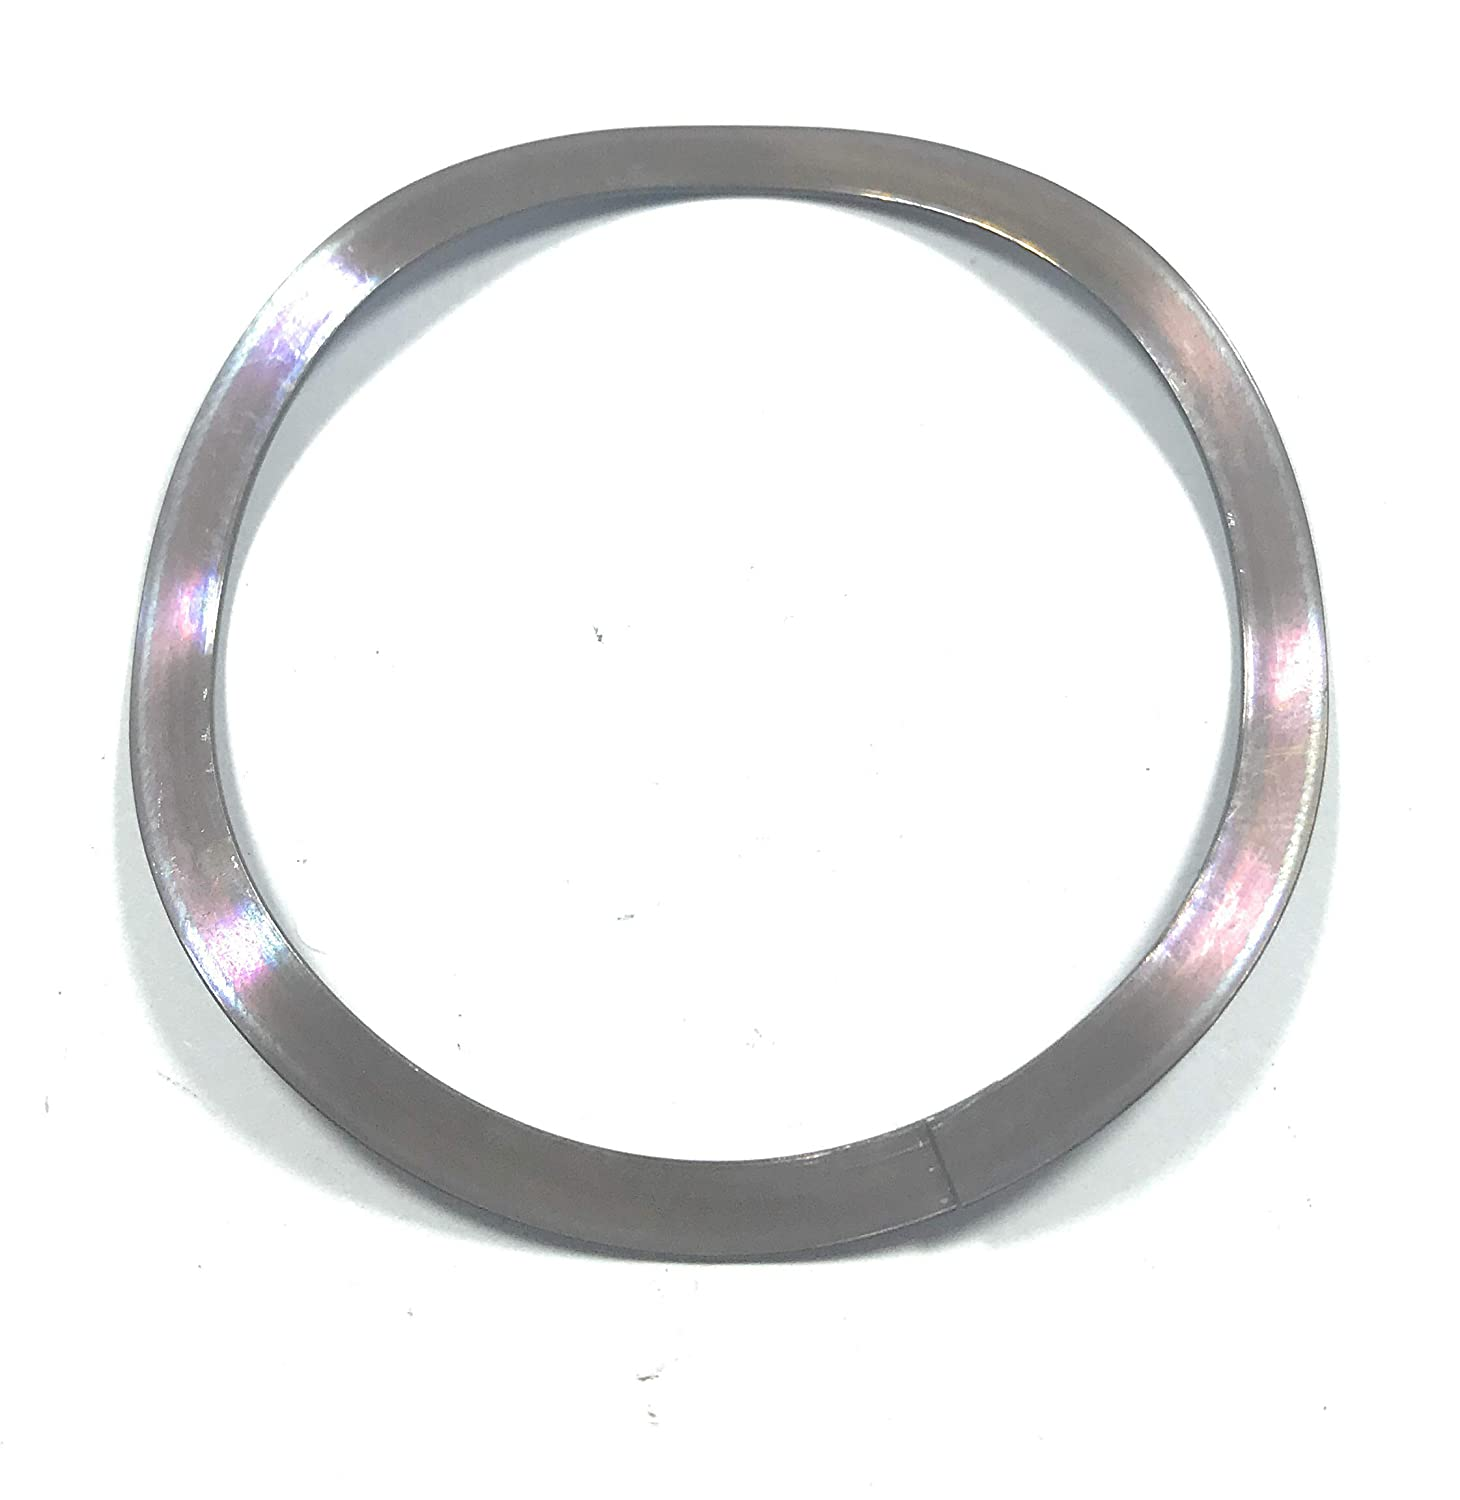 Stainless Steel 17 7PH Wave Washer with Overlap 4 Waves SSB 0244 Metrics 51.69mmID 62mmOD 0.61mm Thickness 4.32mm Free Height 169.1N@2.36mm 85N mm Spring Rate Pack of 10